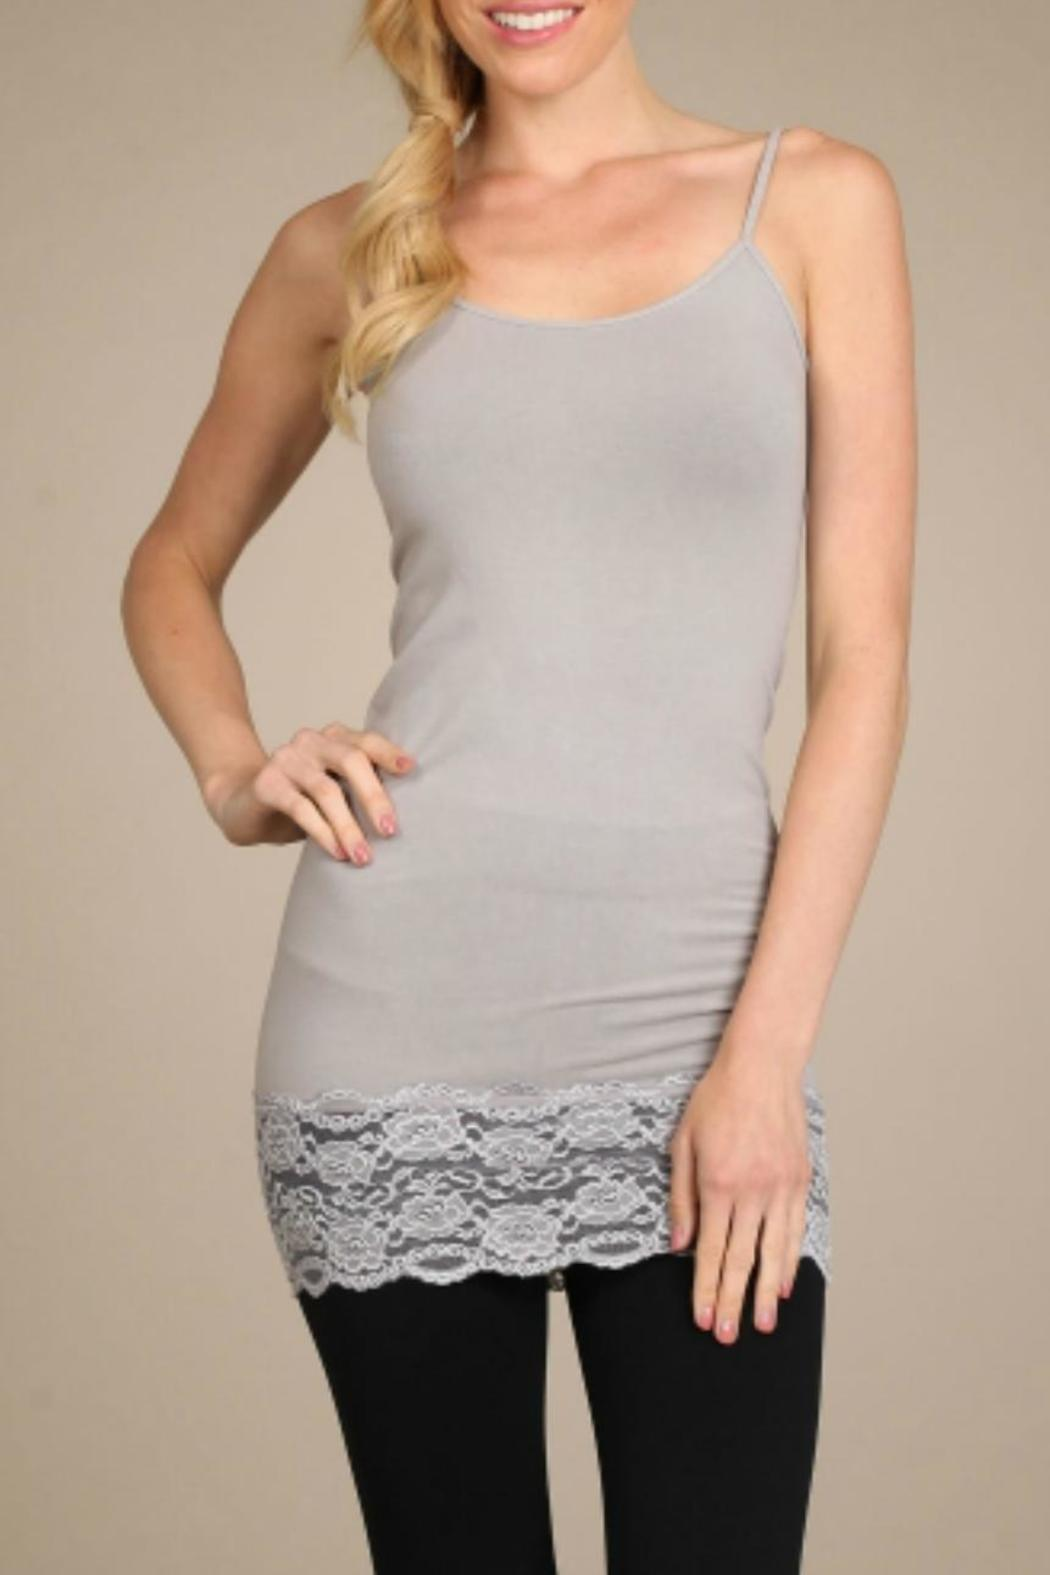 Find great deals on Womens Camisoles at Kohl's today! Sponsored Links Outside companies pay to advertise via these links when specific phrases and words are searched.